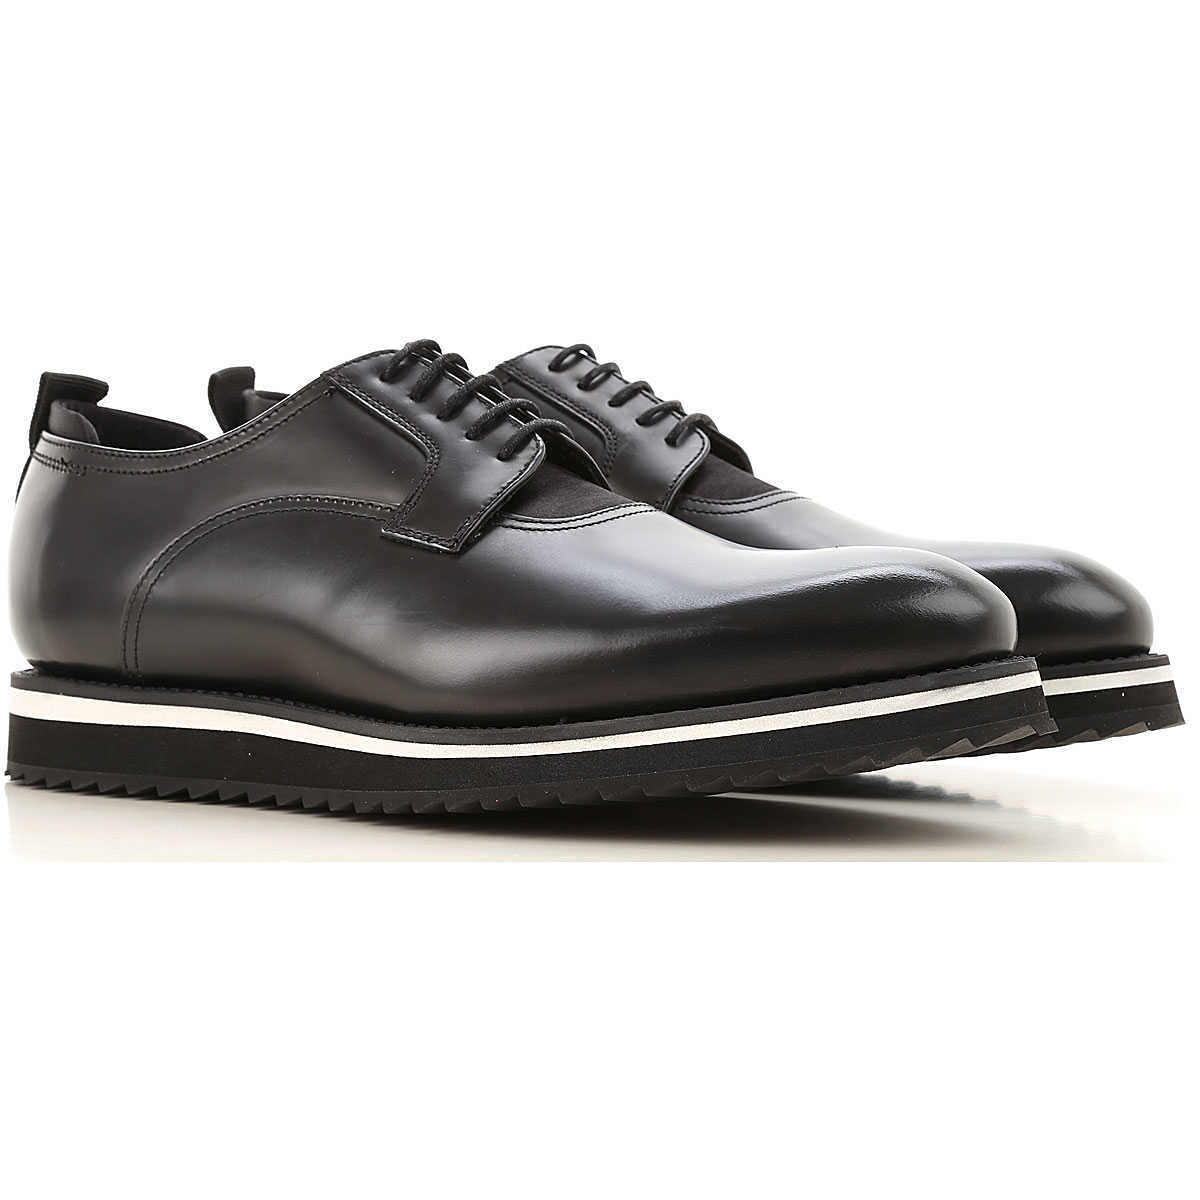 Karl Lagerfeld Lace Up Shoes for Men Oxfords Derbies and Brogues - GOOFASH